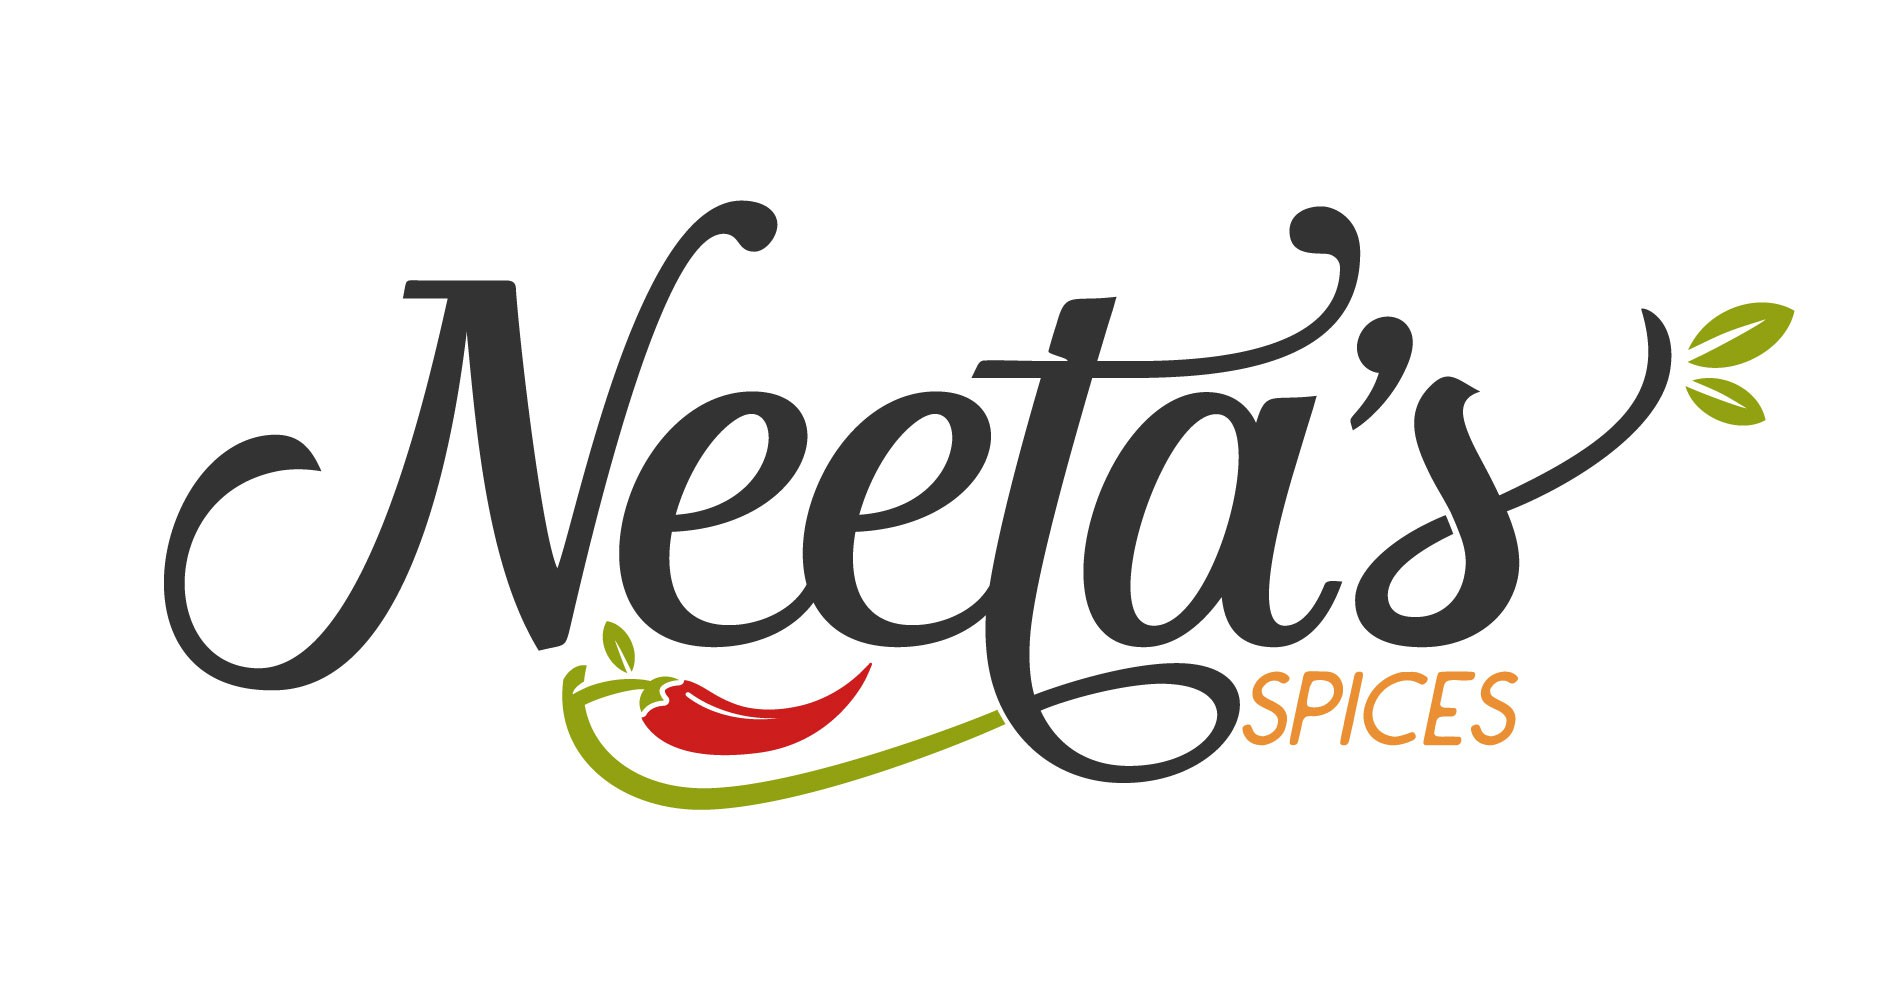 A Spices company looking for a  new, fresh innovative design